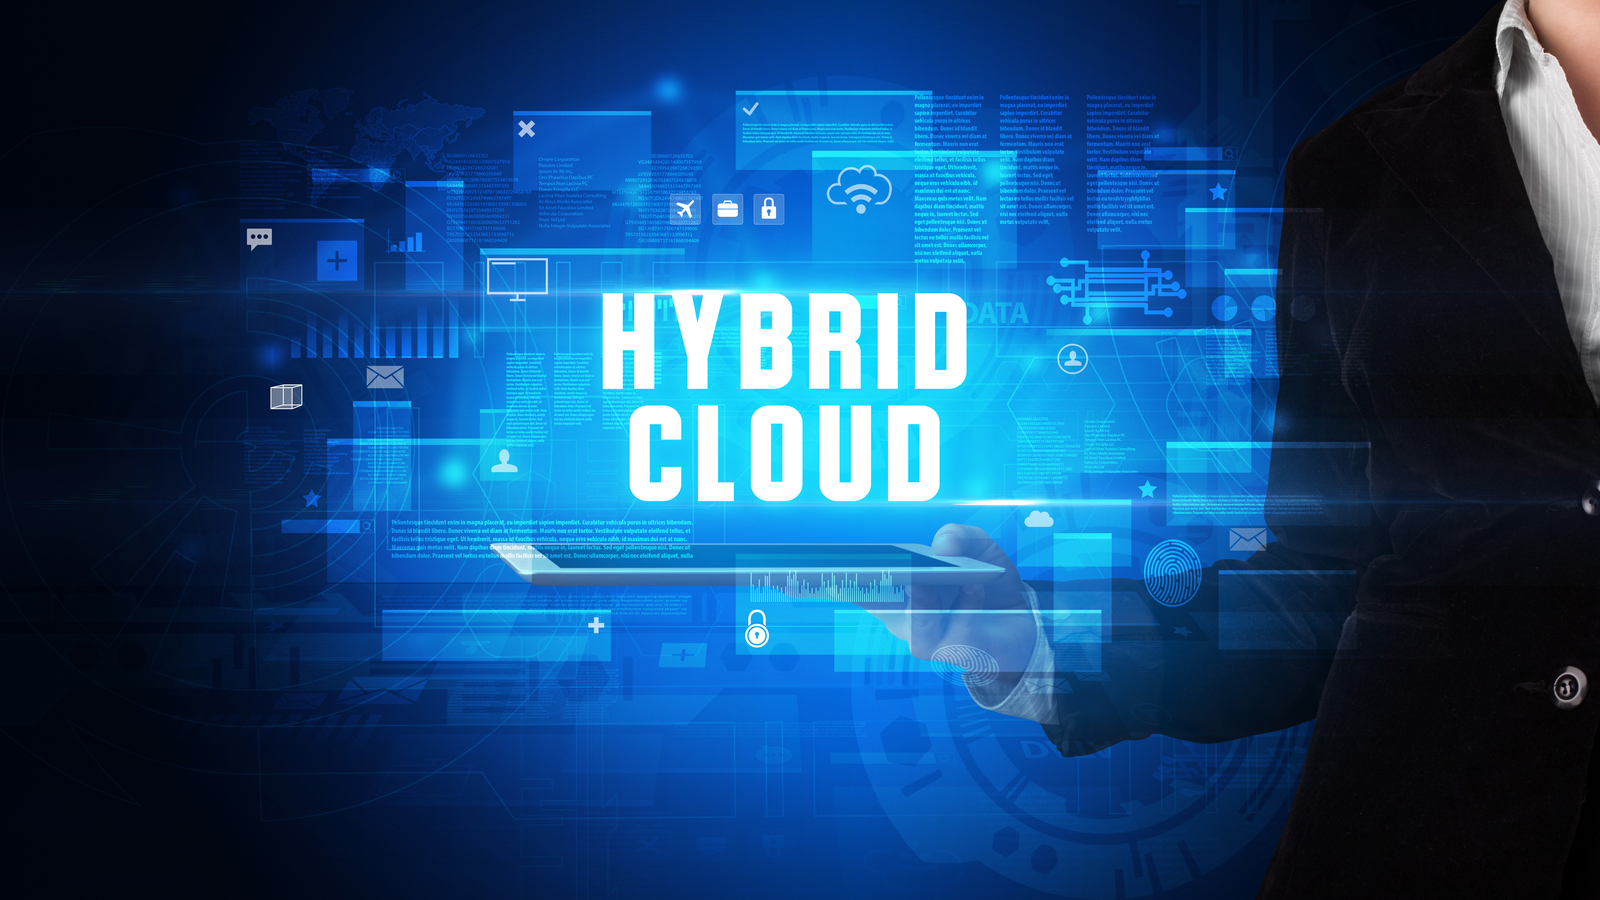 IBM To Acquire Taos to Augment Its Hybrid Cloud Solutions